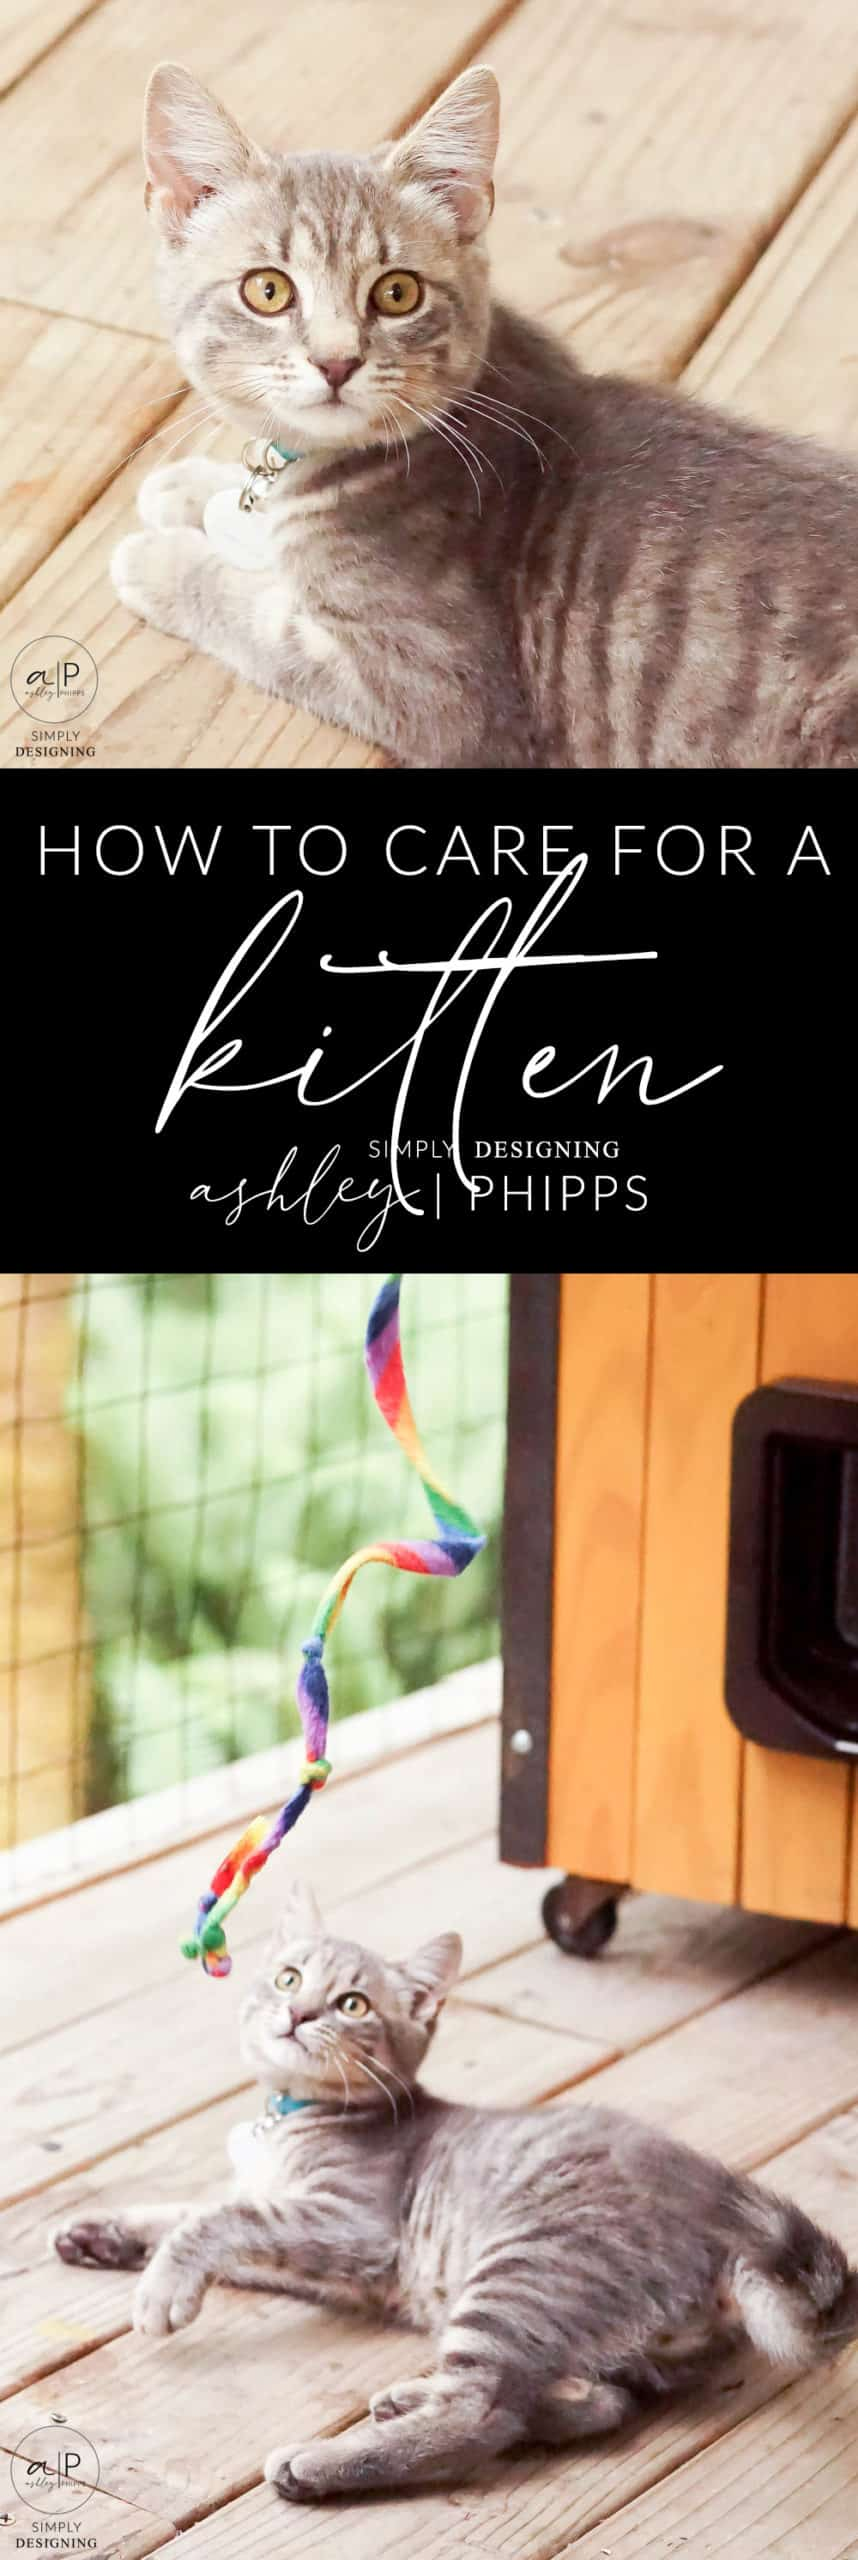 How to Care for a Kitten